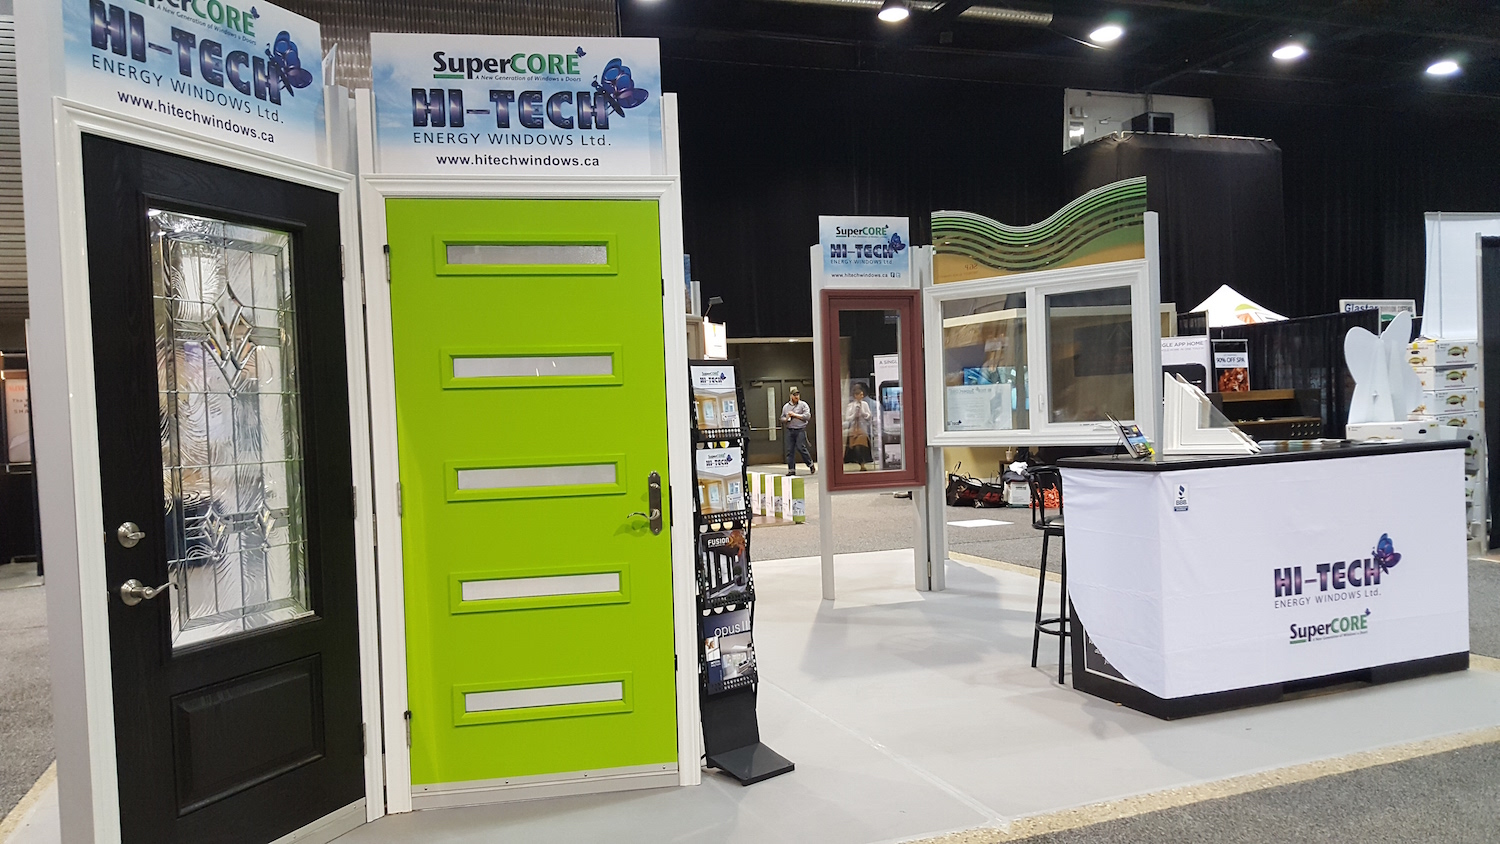 Hi-Tech at Winnipeg\'s Home and Garden Show - Hi-Tech Energy Windows